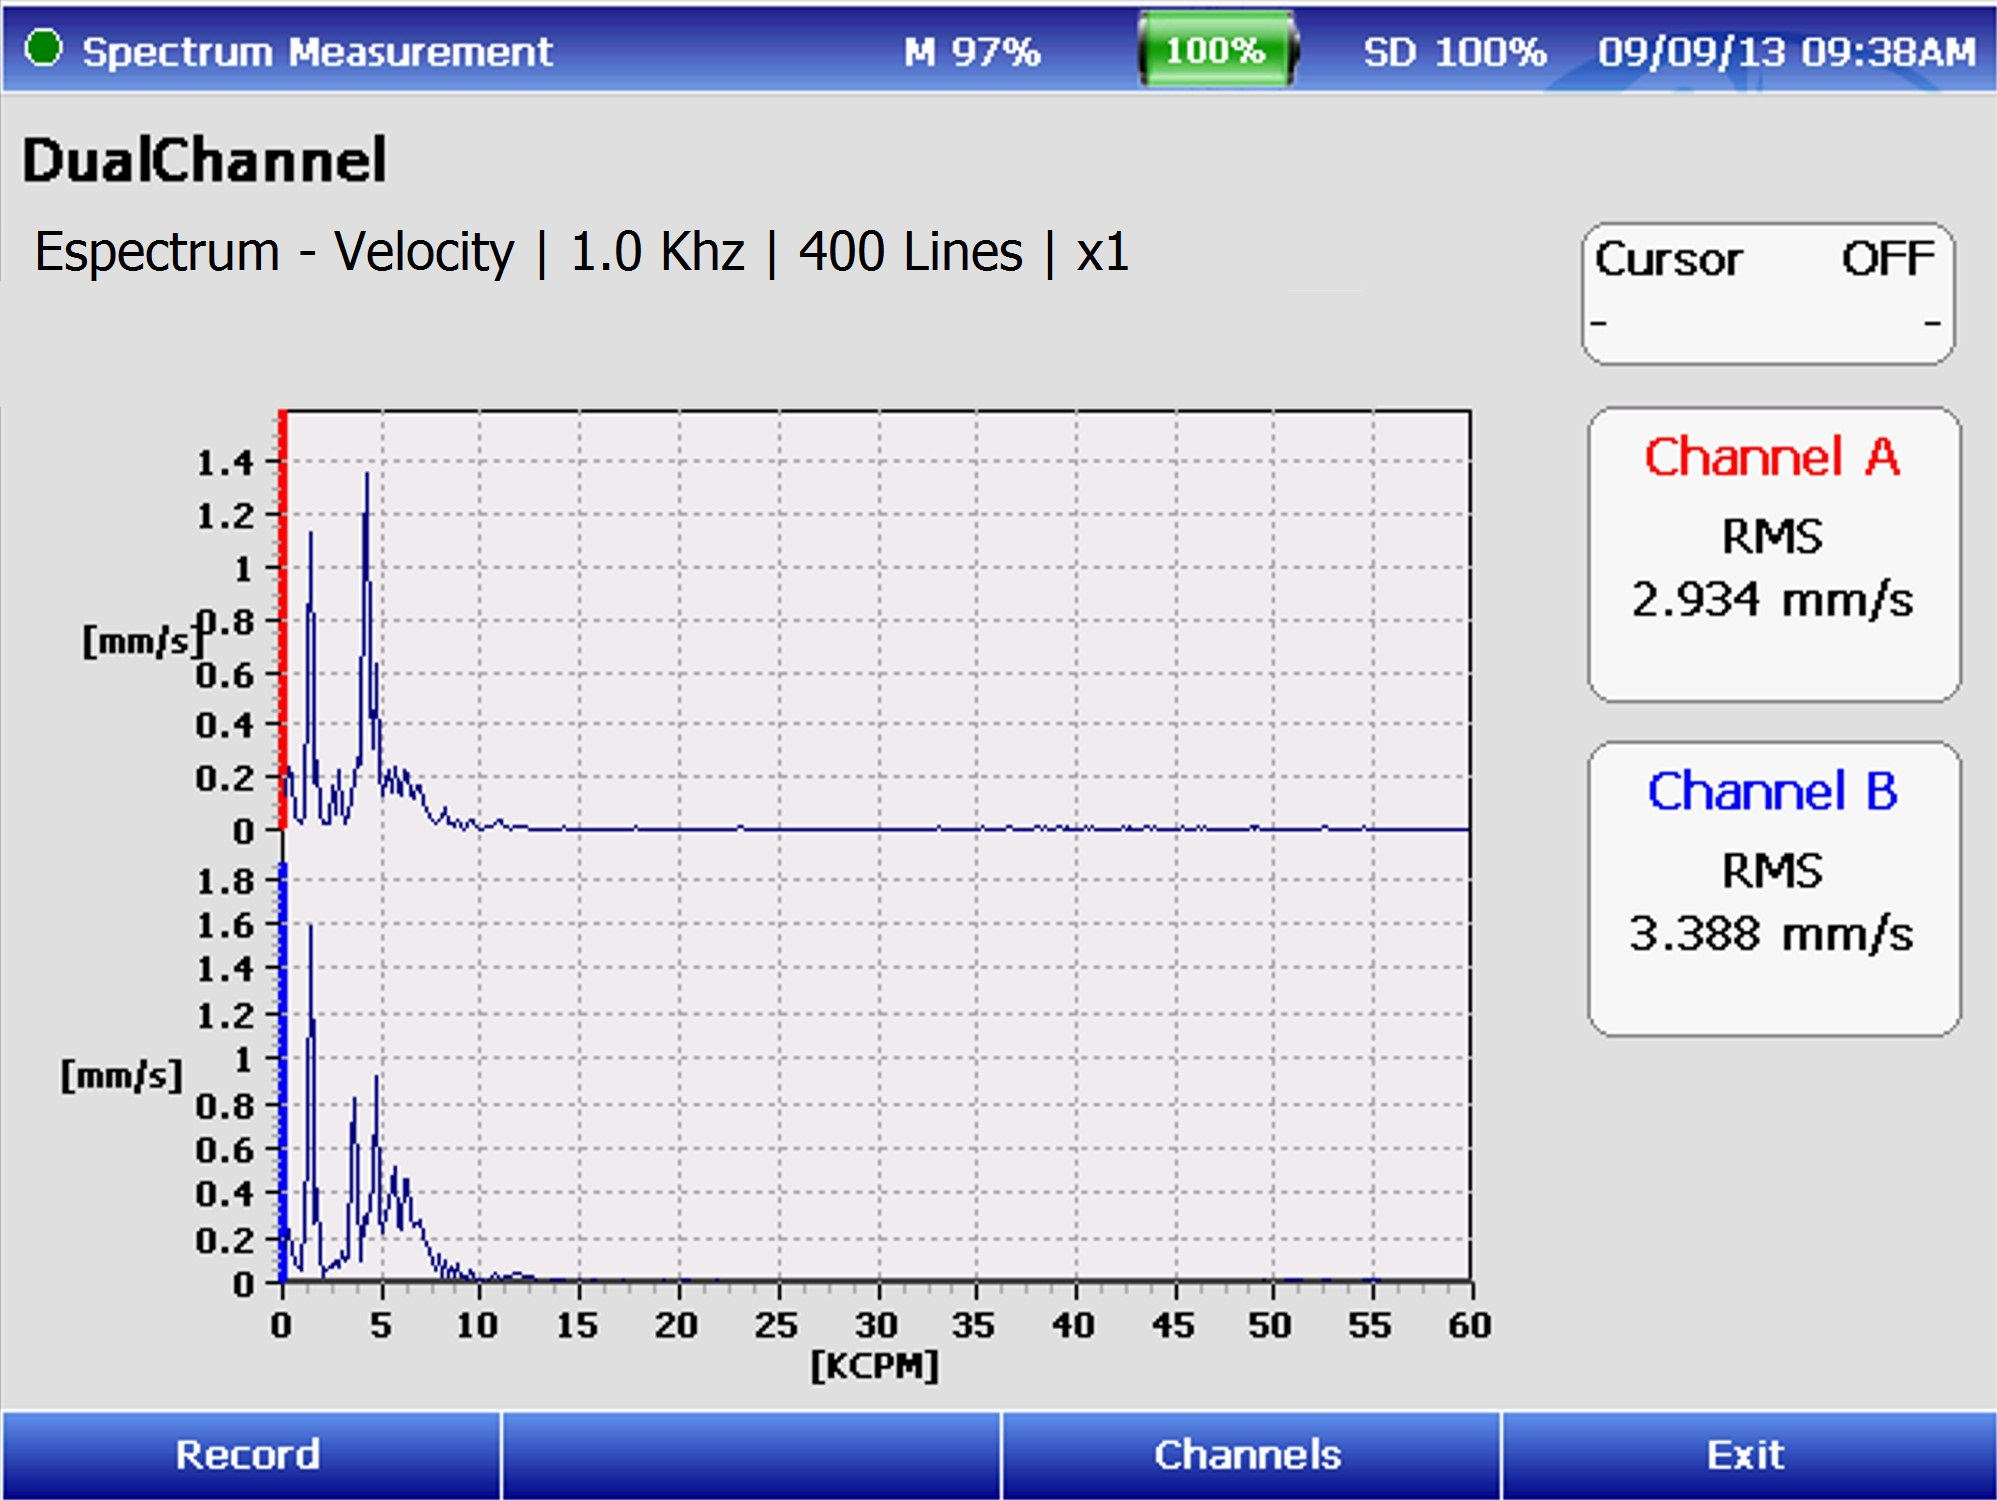 Two channels Measurements